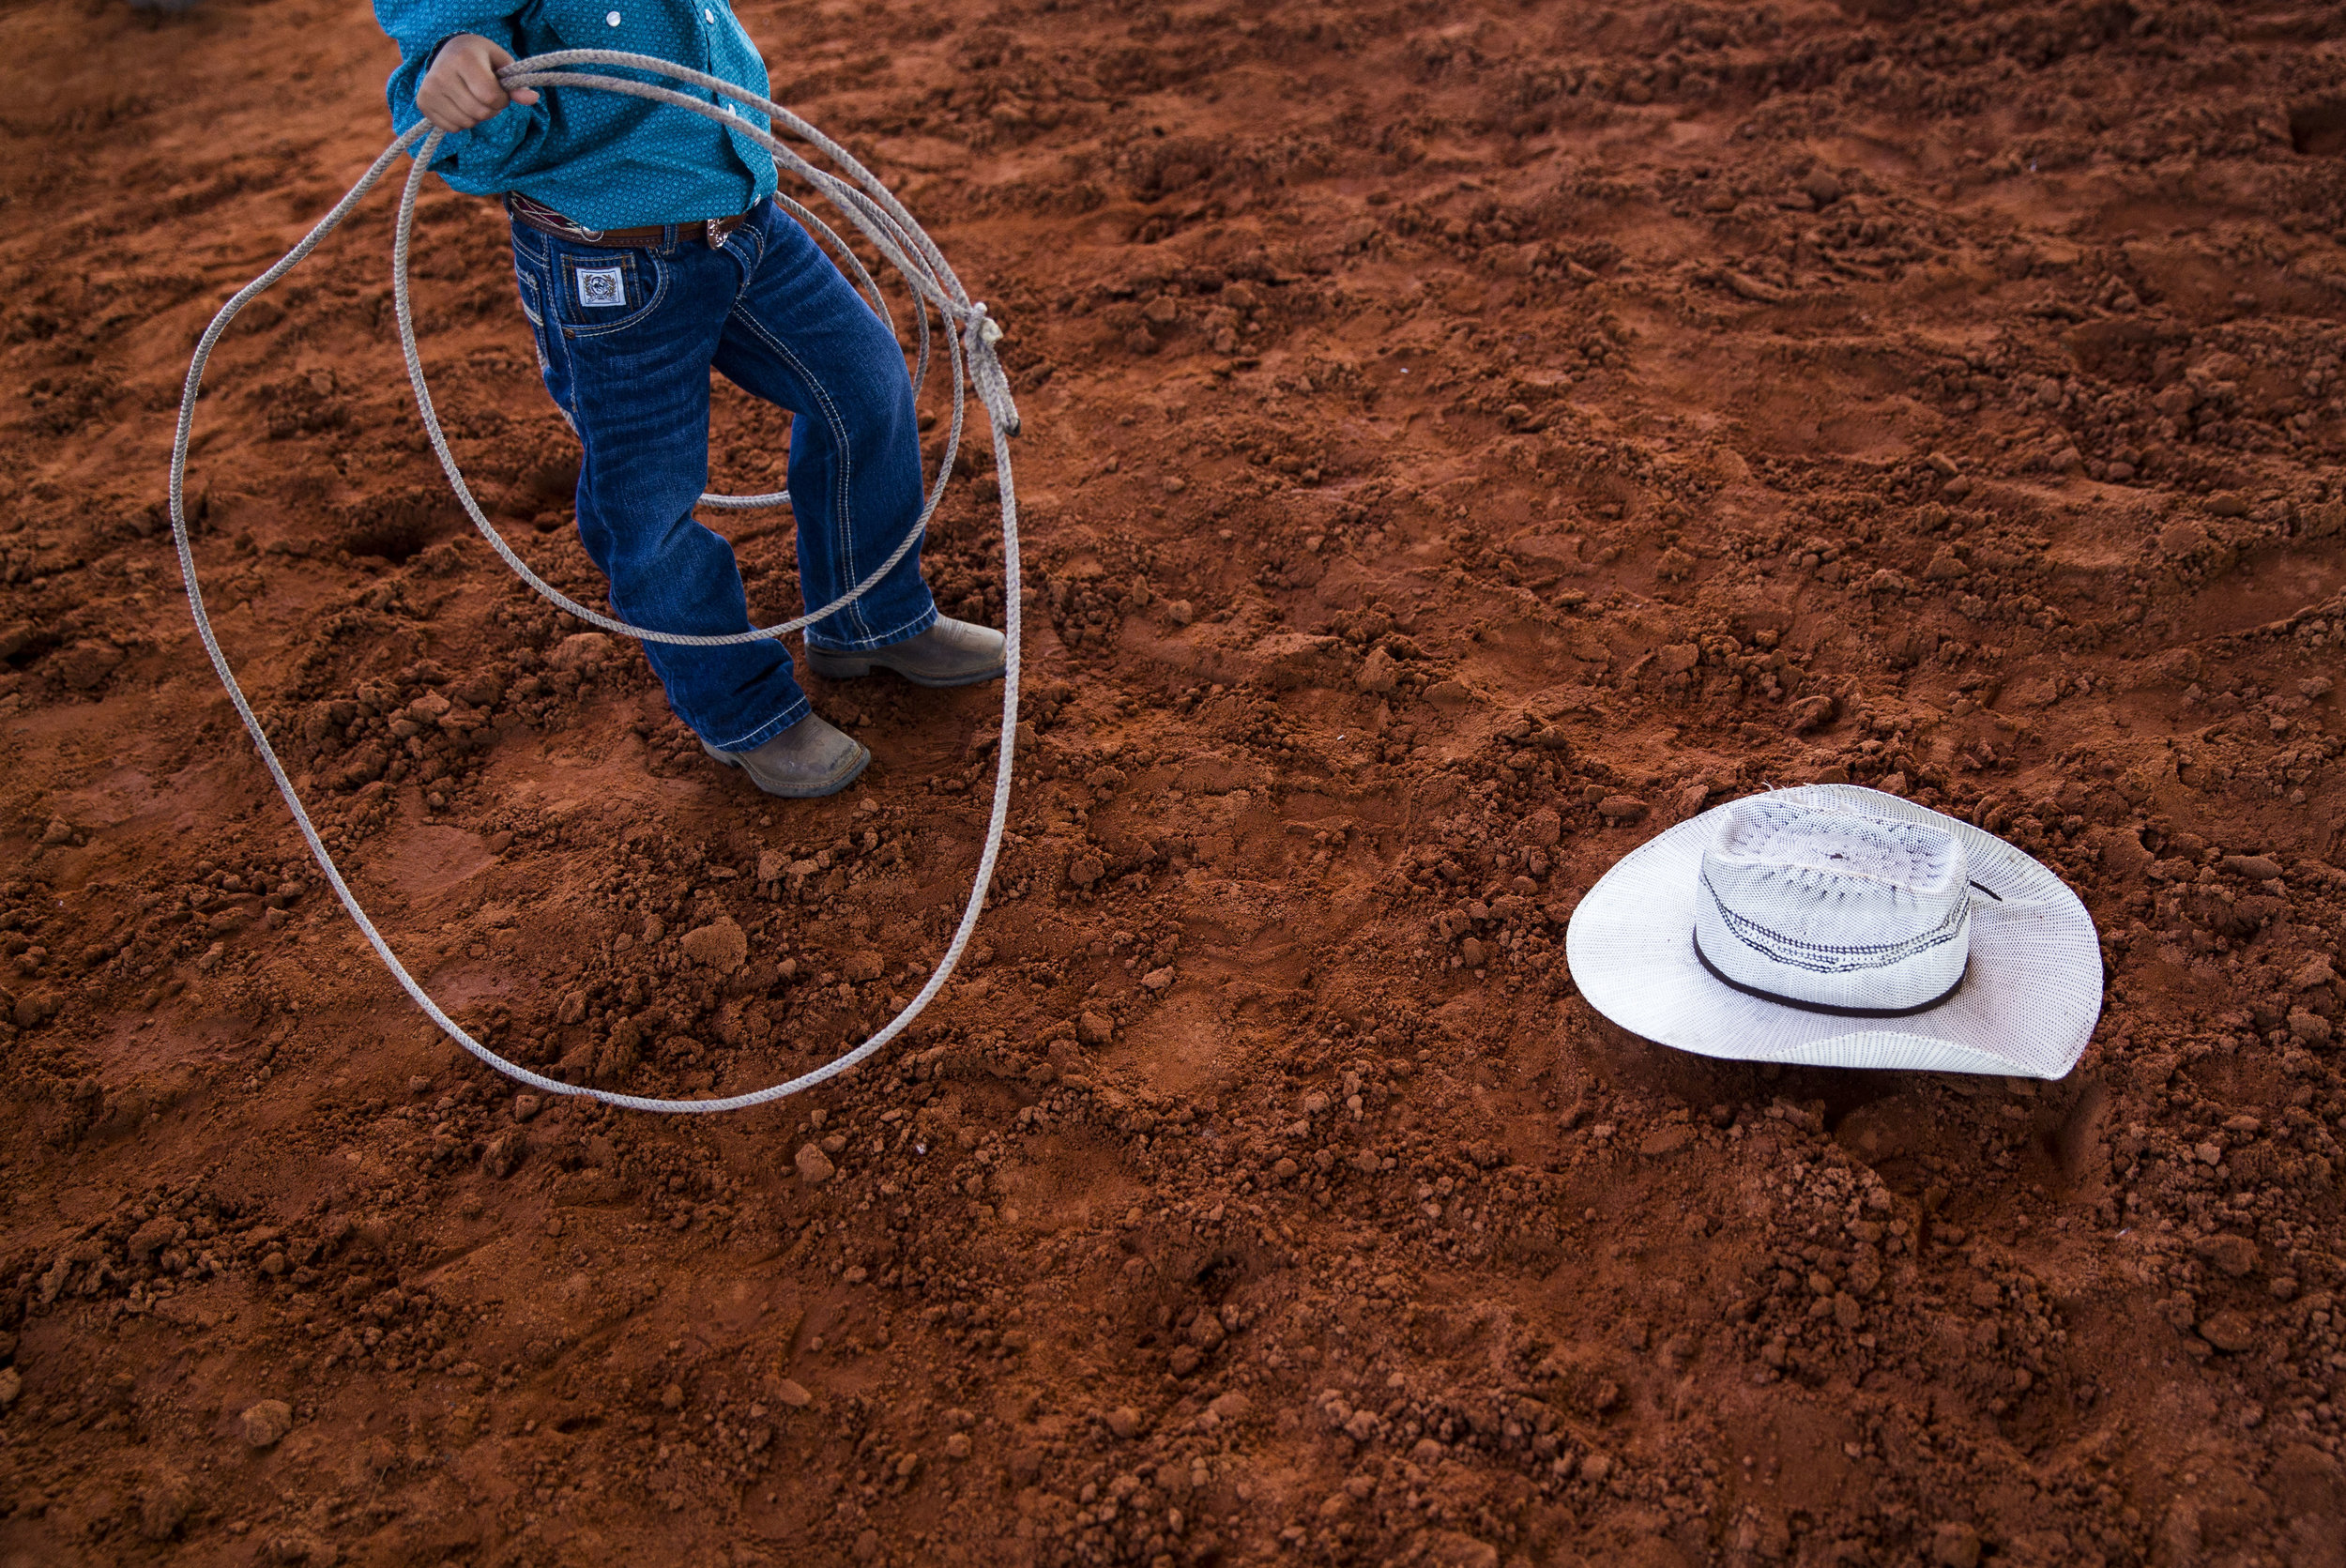 A kid roping participant lines up to practice his roping for the youth events during Junior Cypress Memorial Rodeo at the Junior Cypress Rodeo Arena in Clewiston, Fla. on Saturday, March 17, 2018.